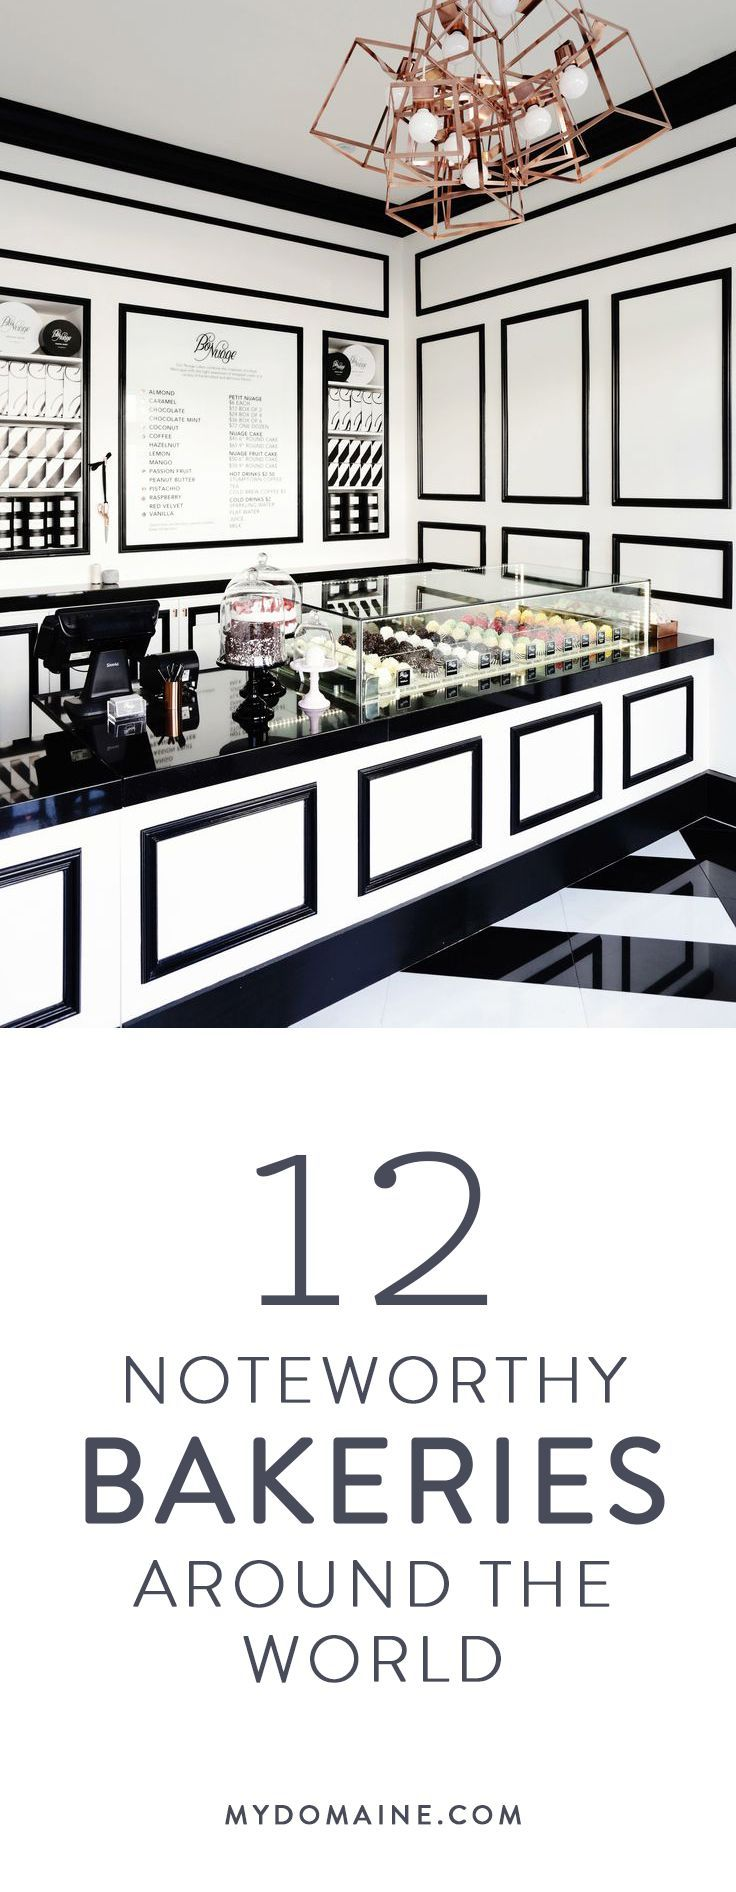 140 best Bakery Dreams images on Pinterest | Bakery shops ...